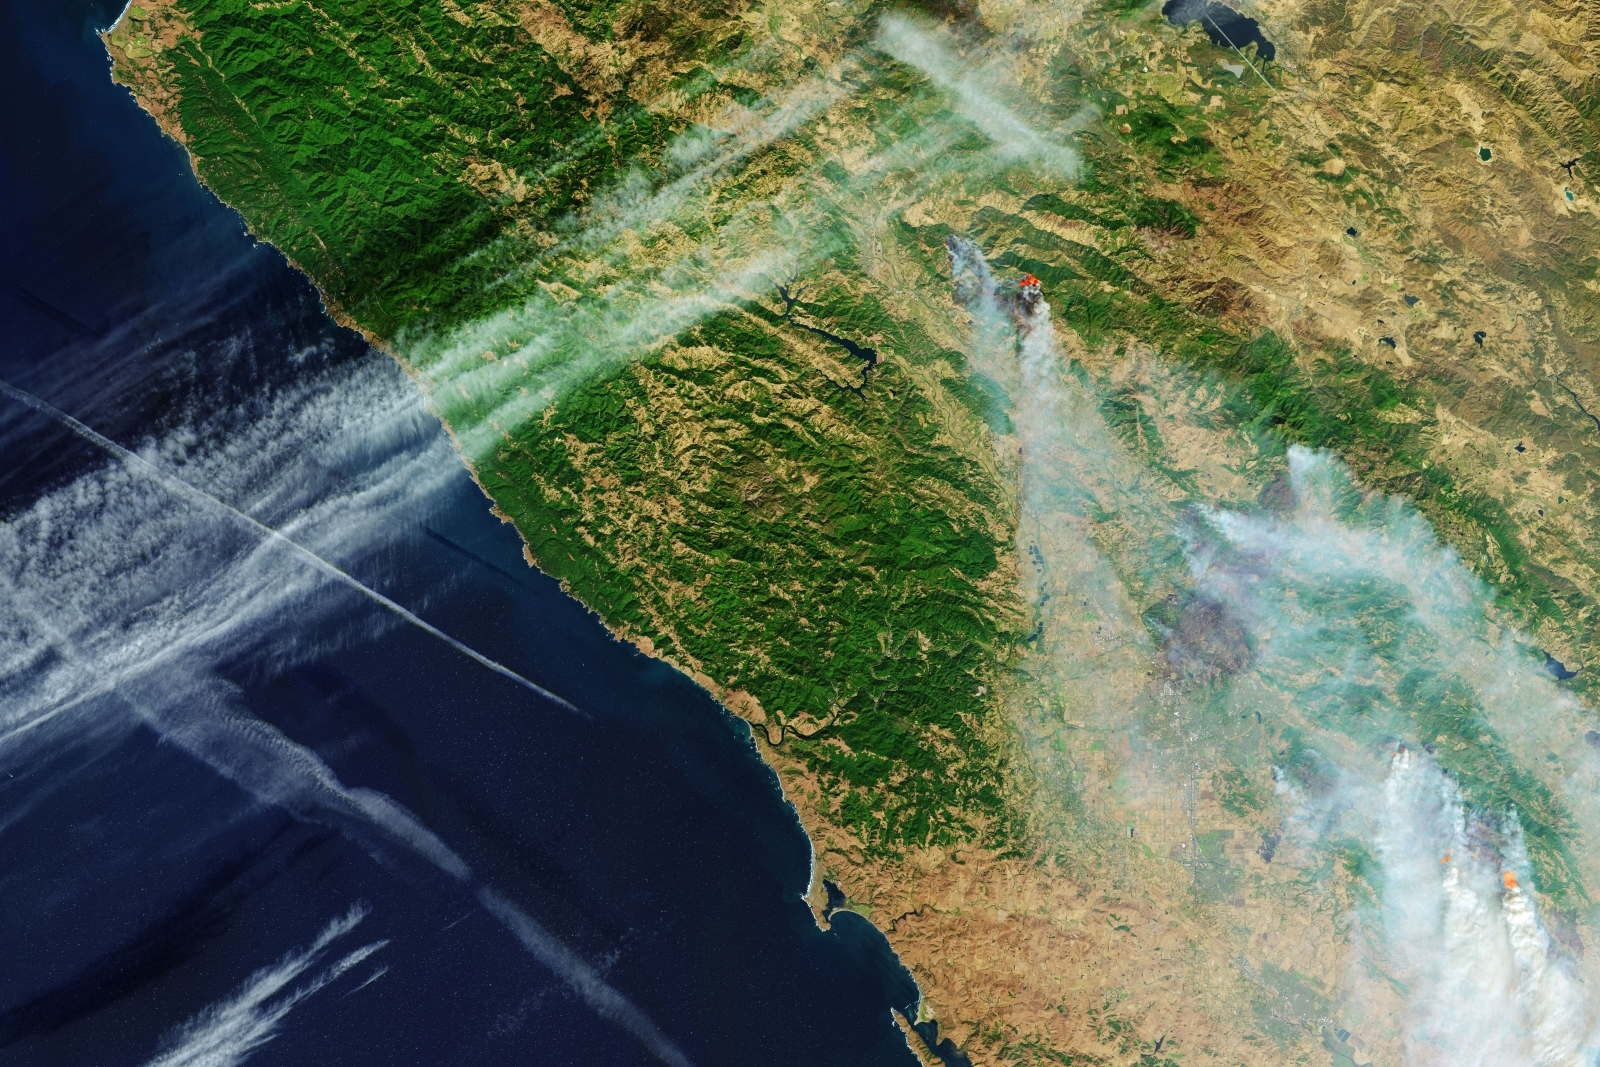 California Fire composite image